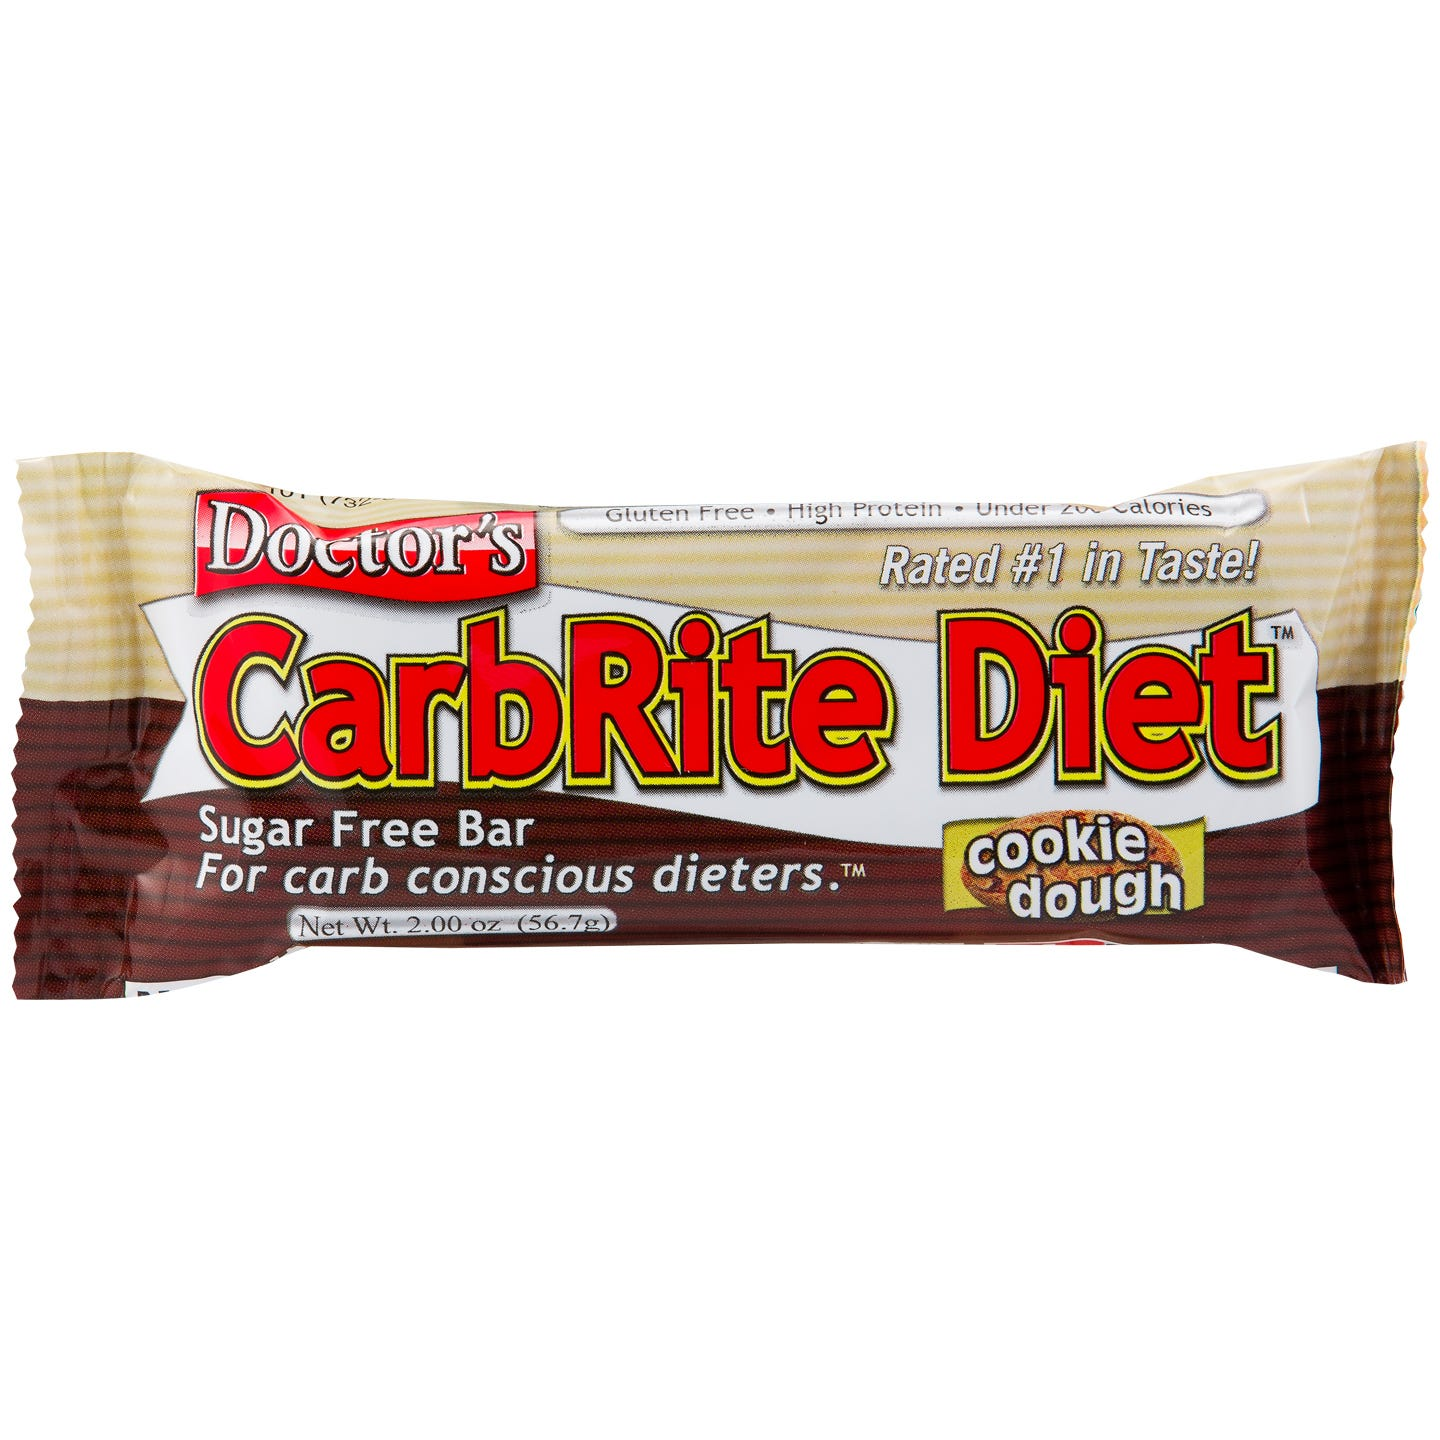 Doctor's CarbRite Diet Protein Bars - Cookie Dough